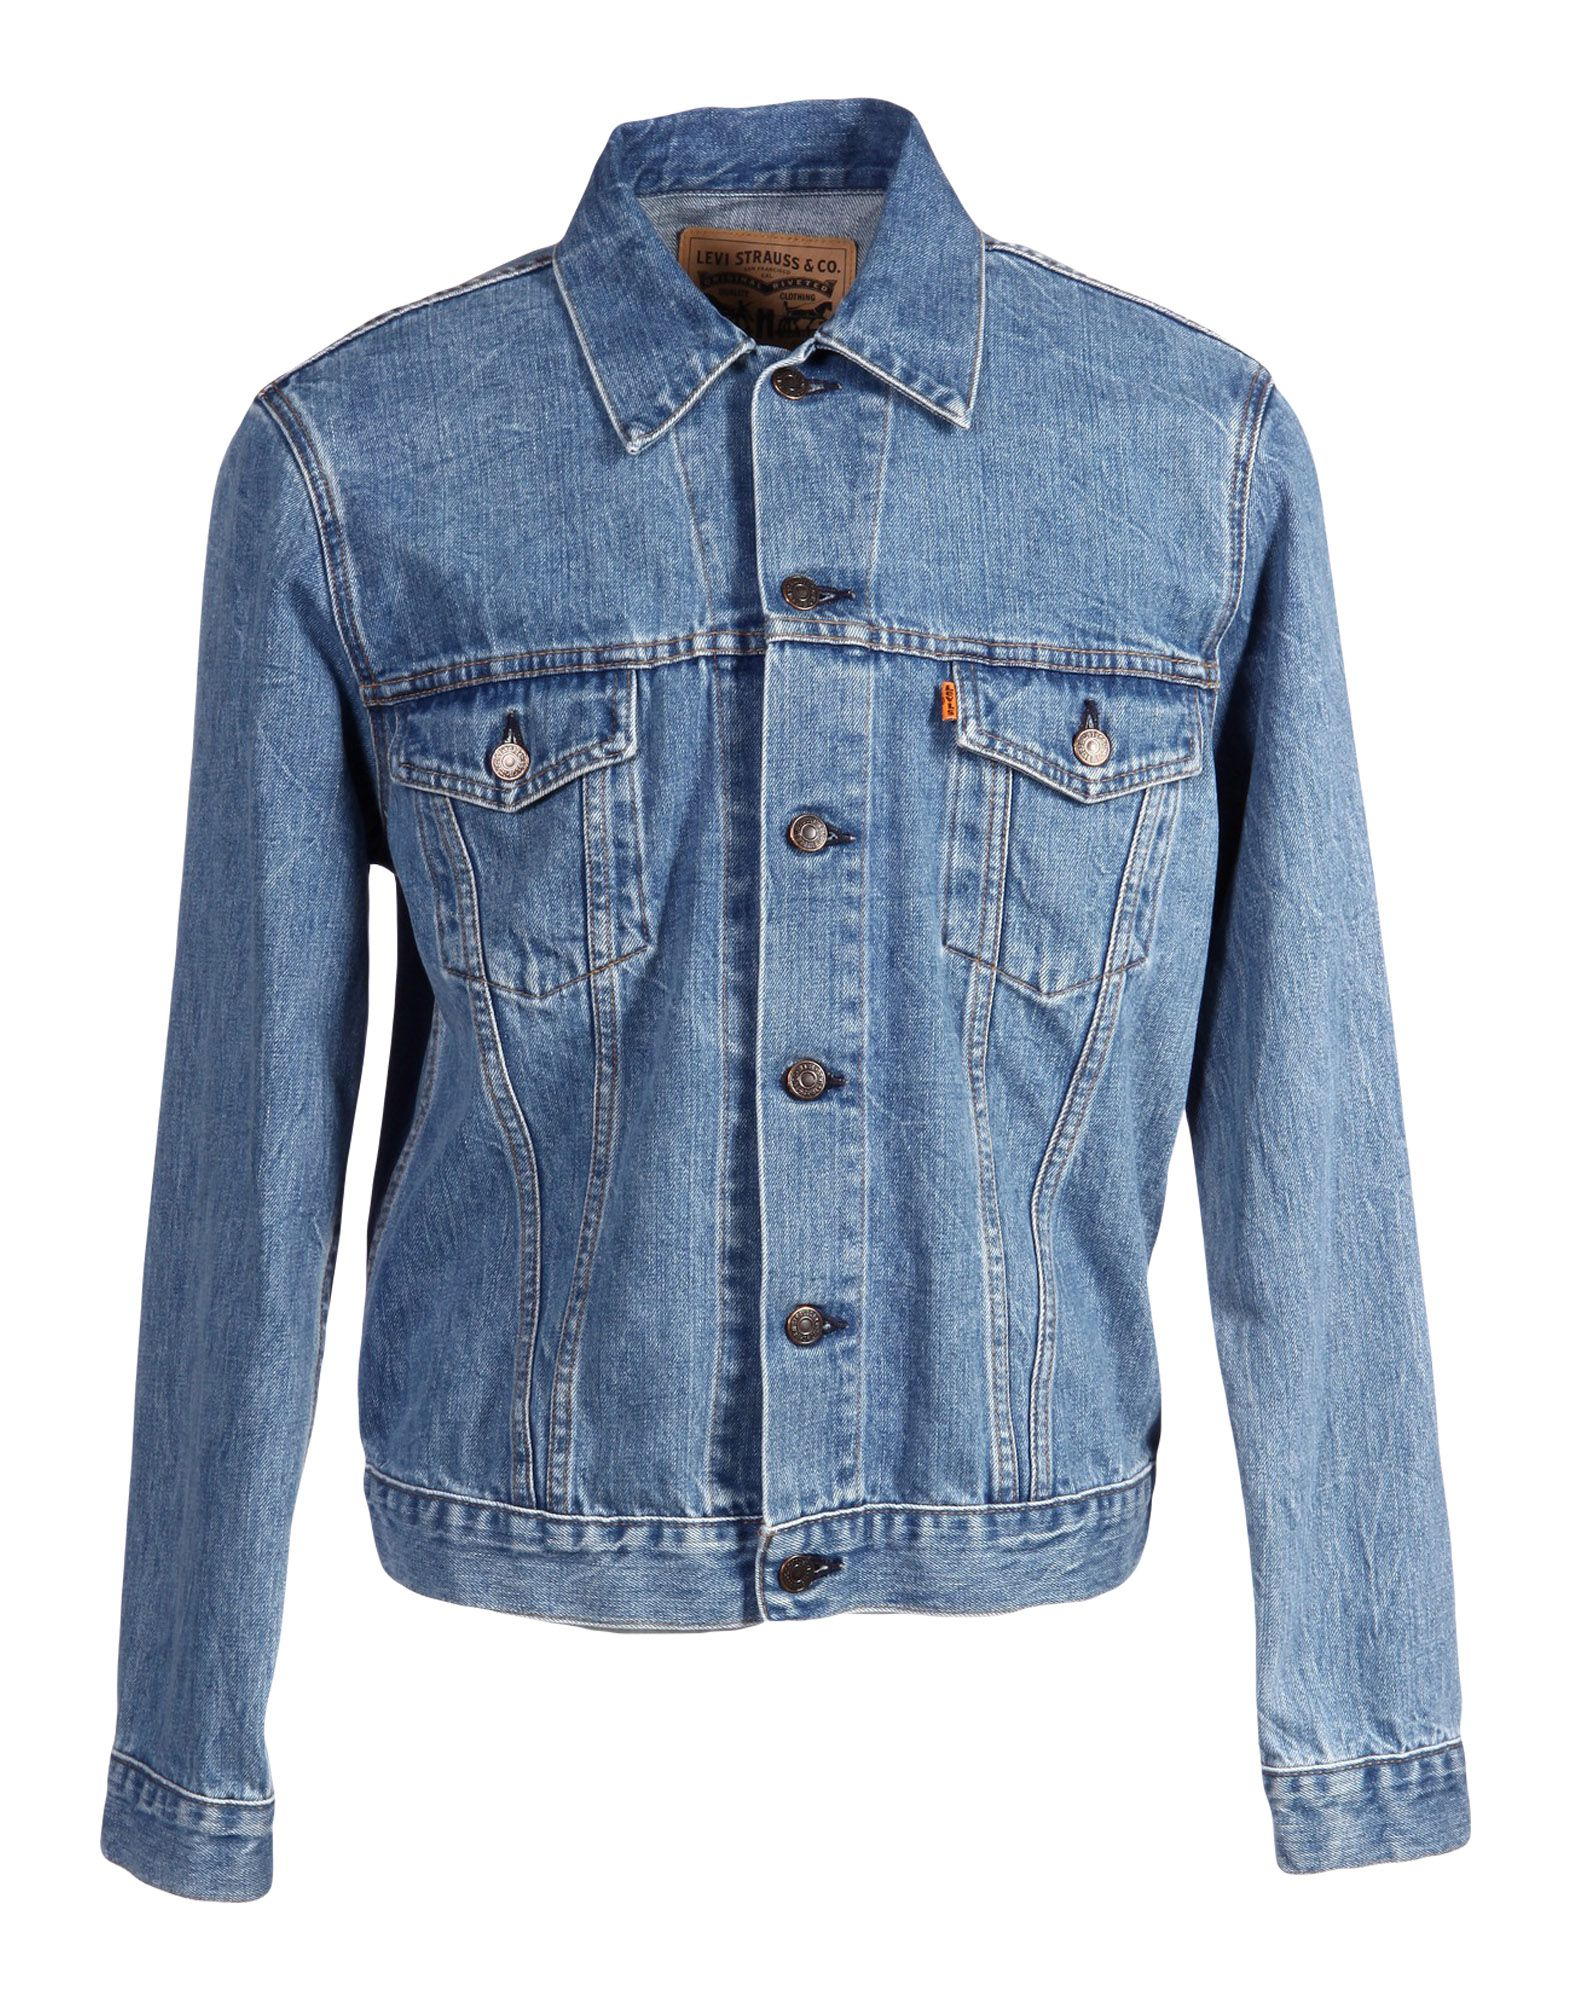 Levi's Vintage Clothing Denim Outerwear